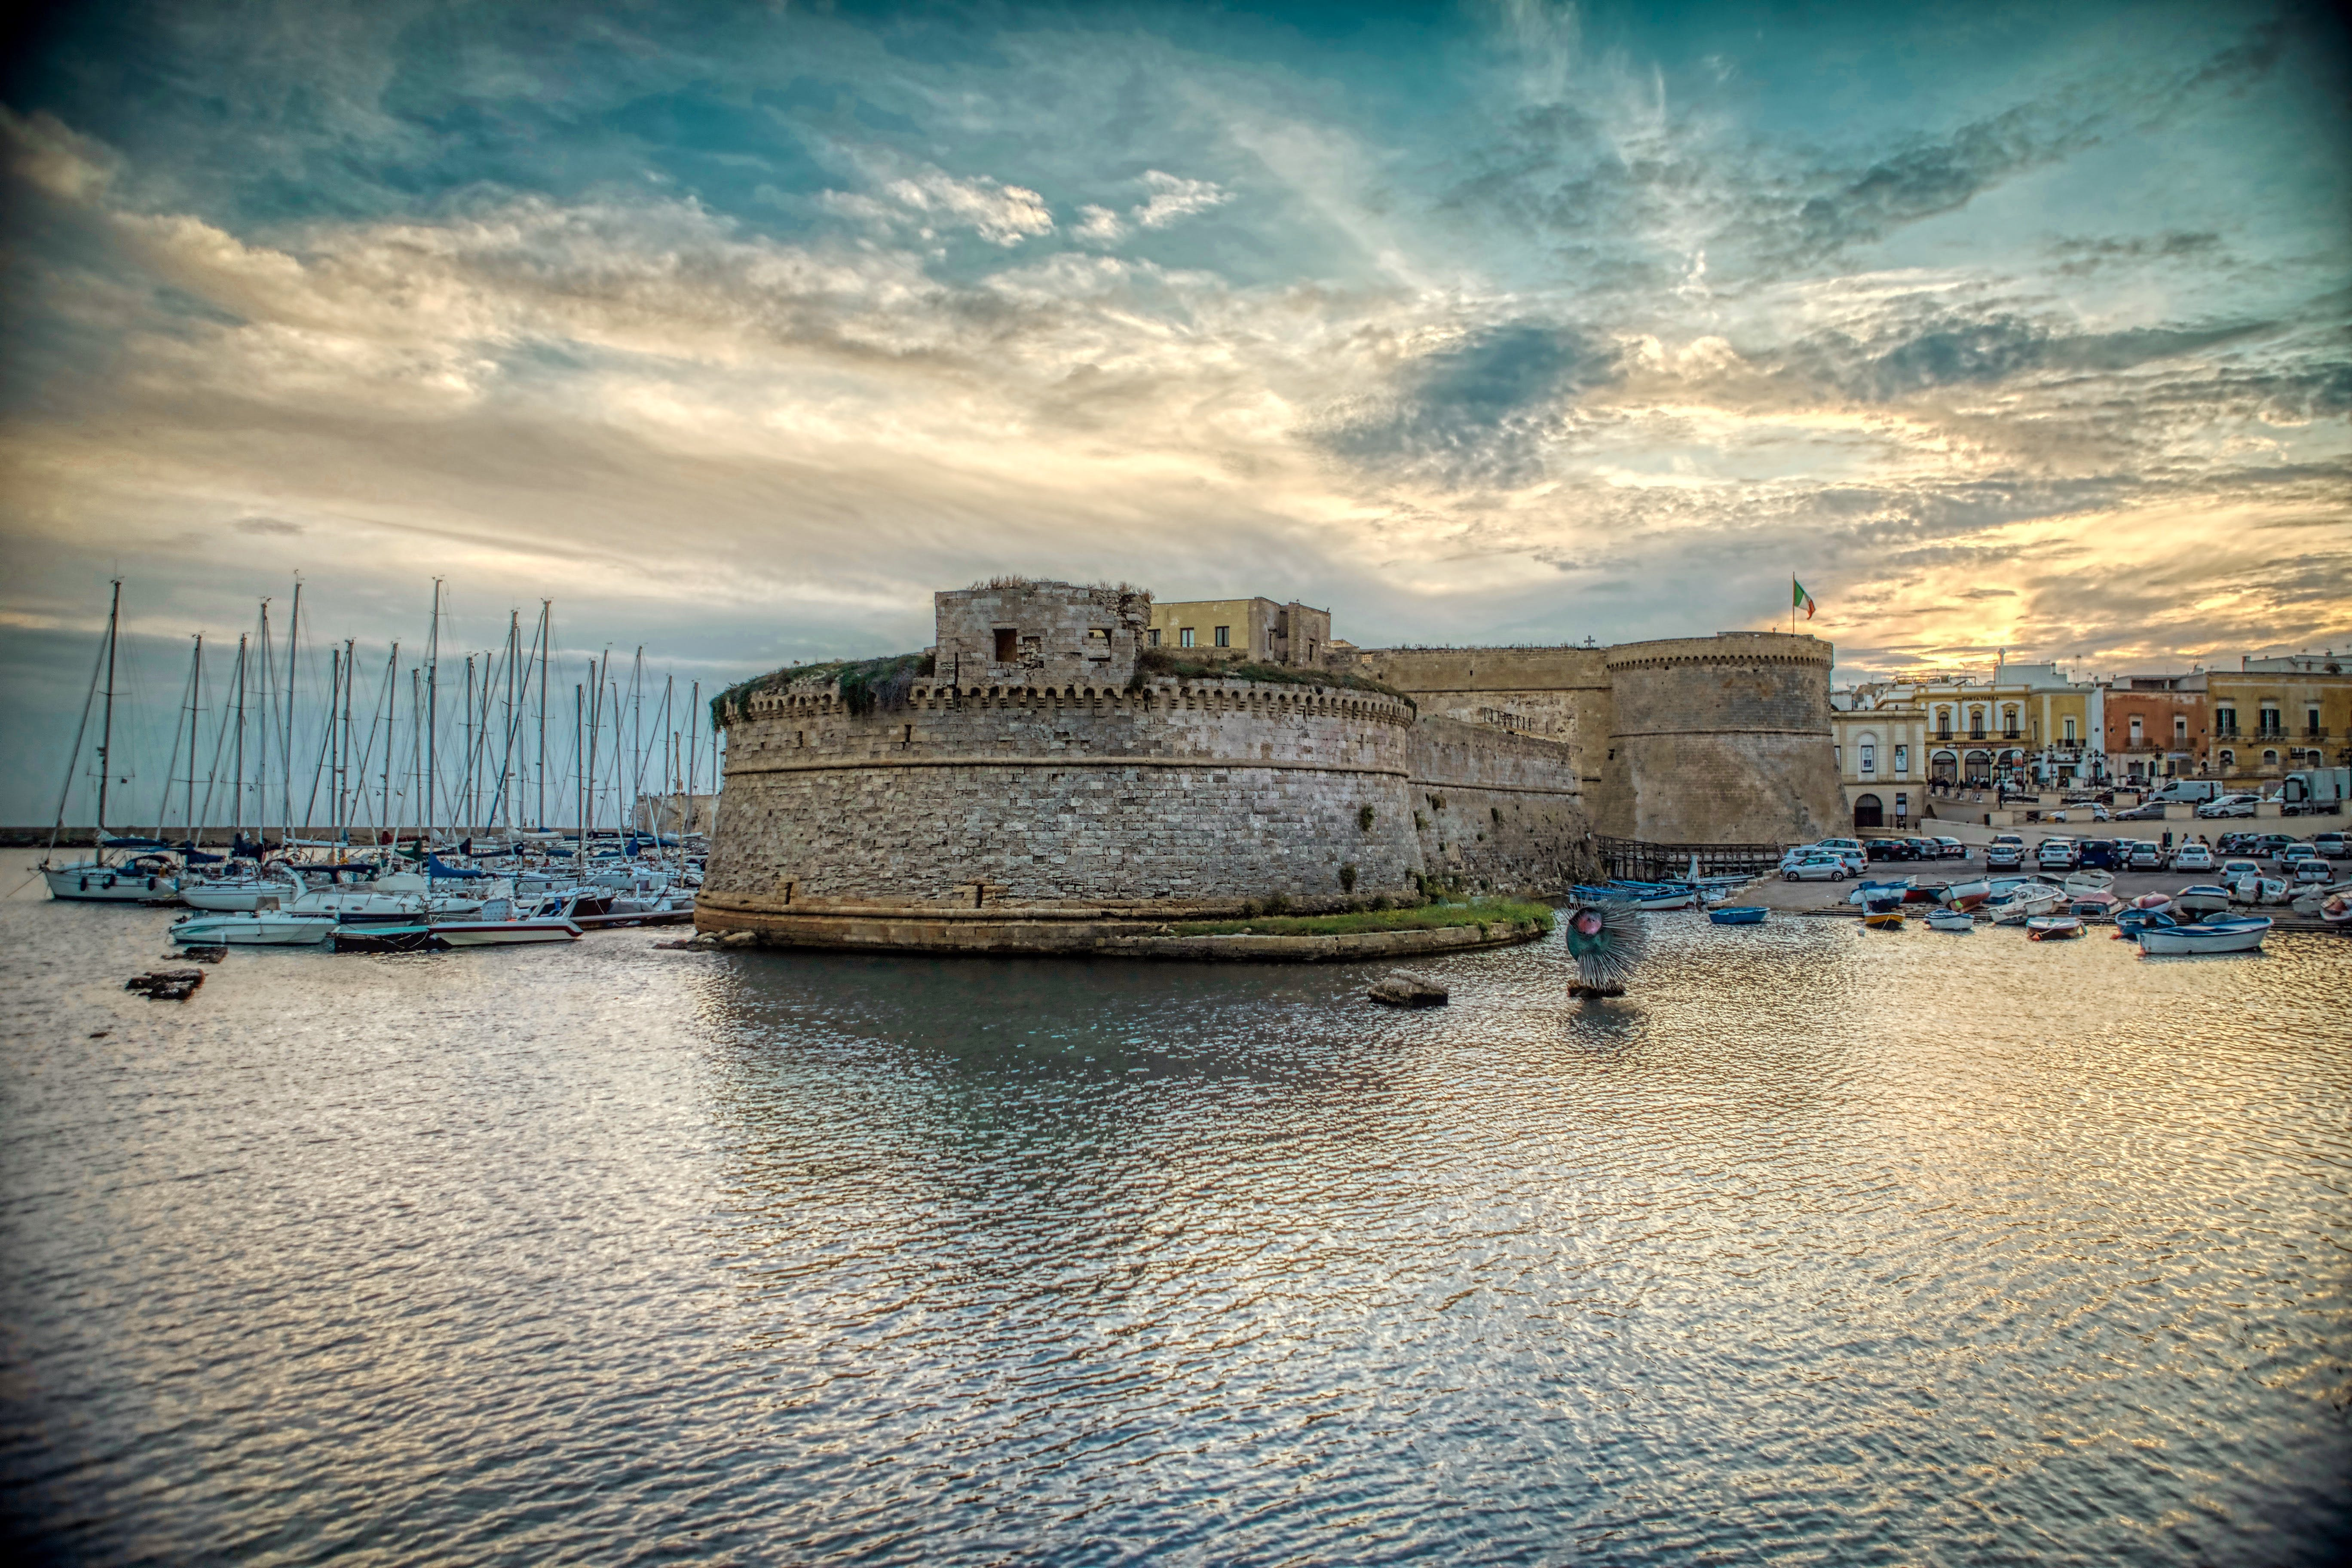 Free stock photo of boats, castle, clouds, evening sun